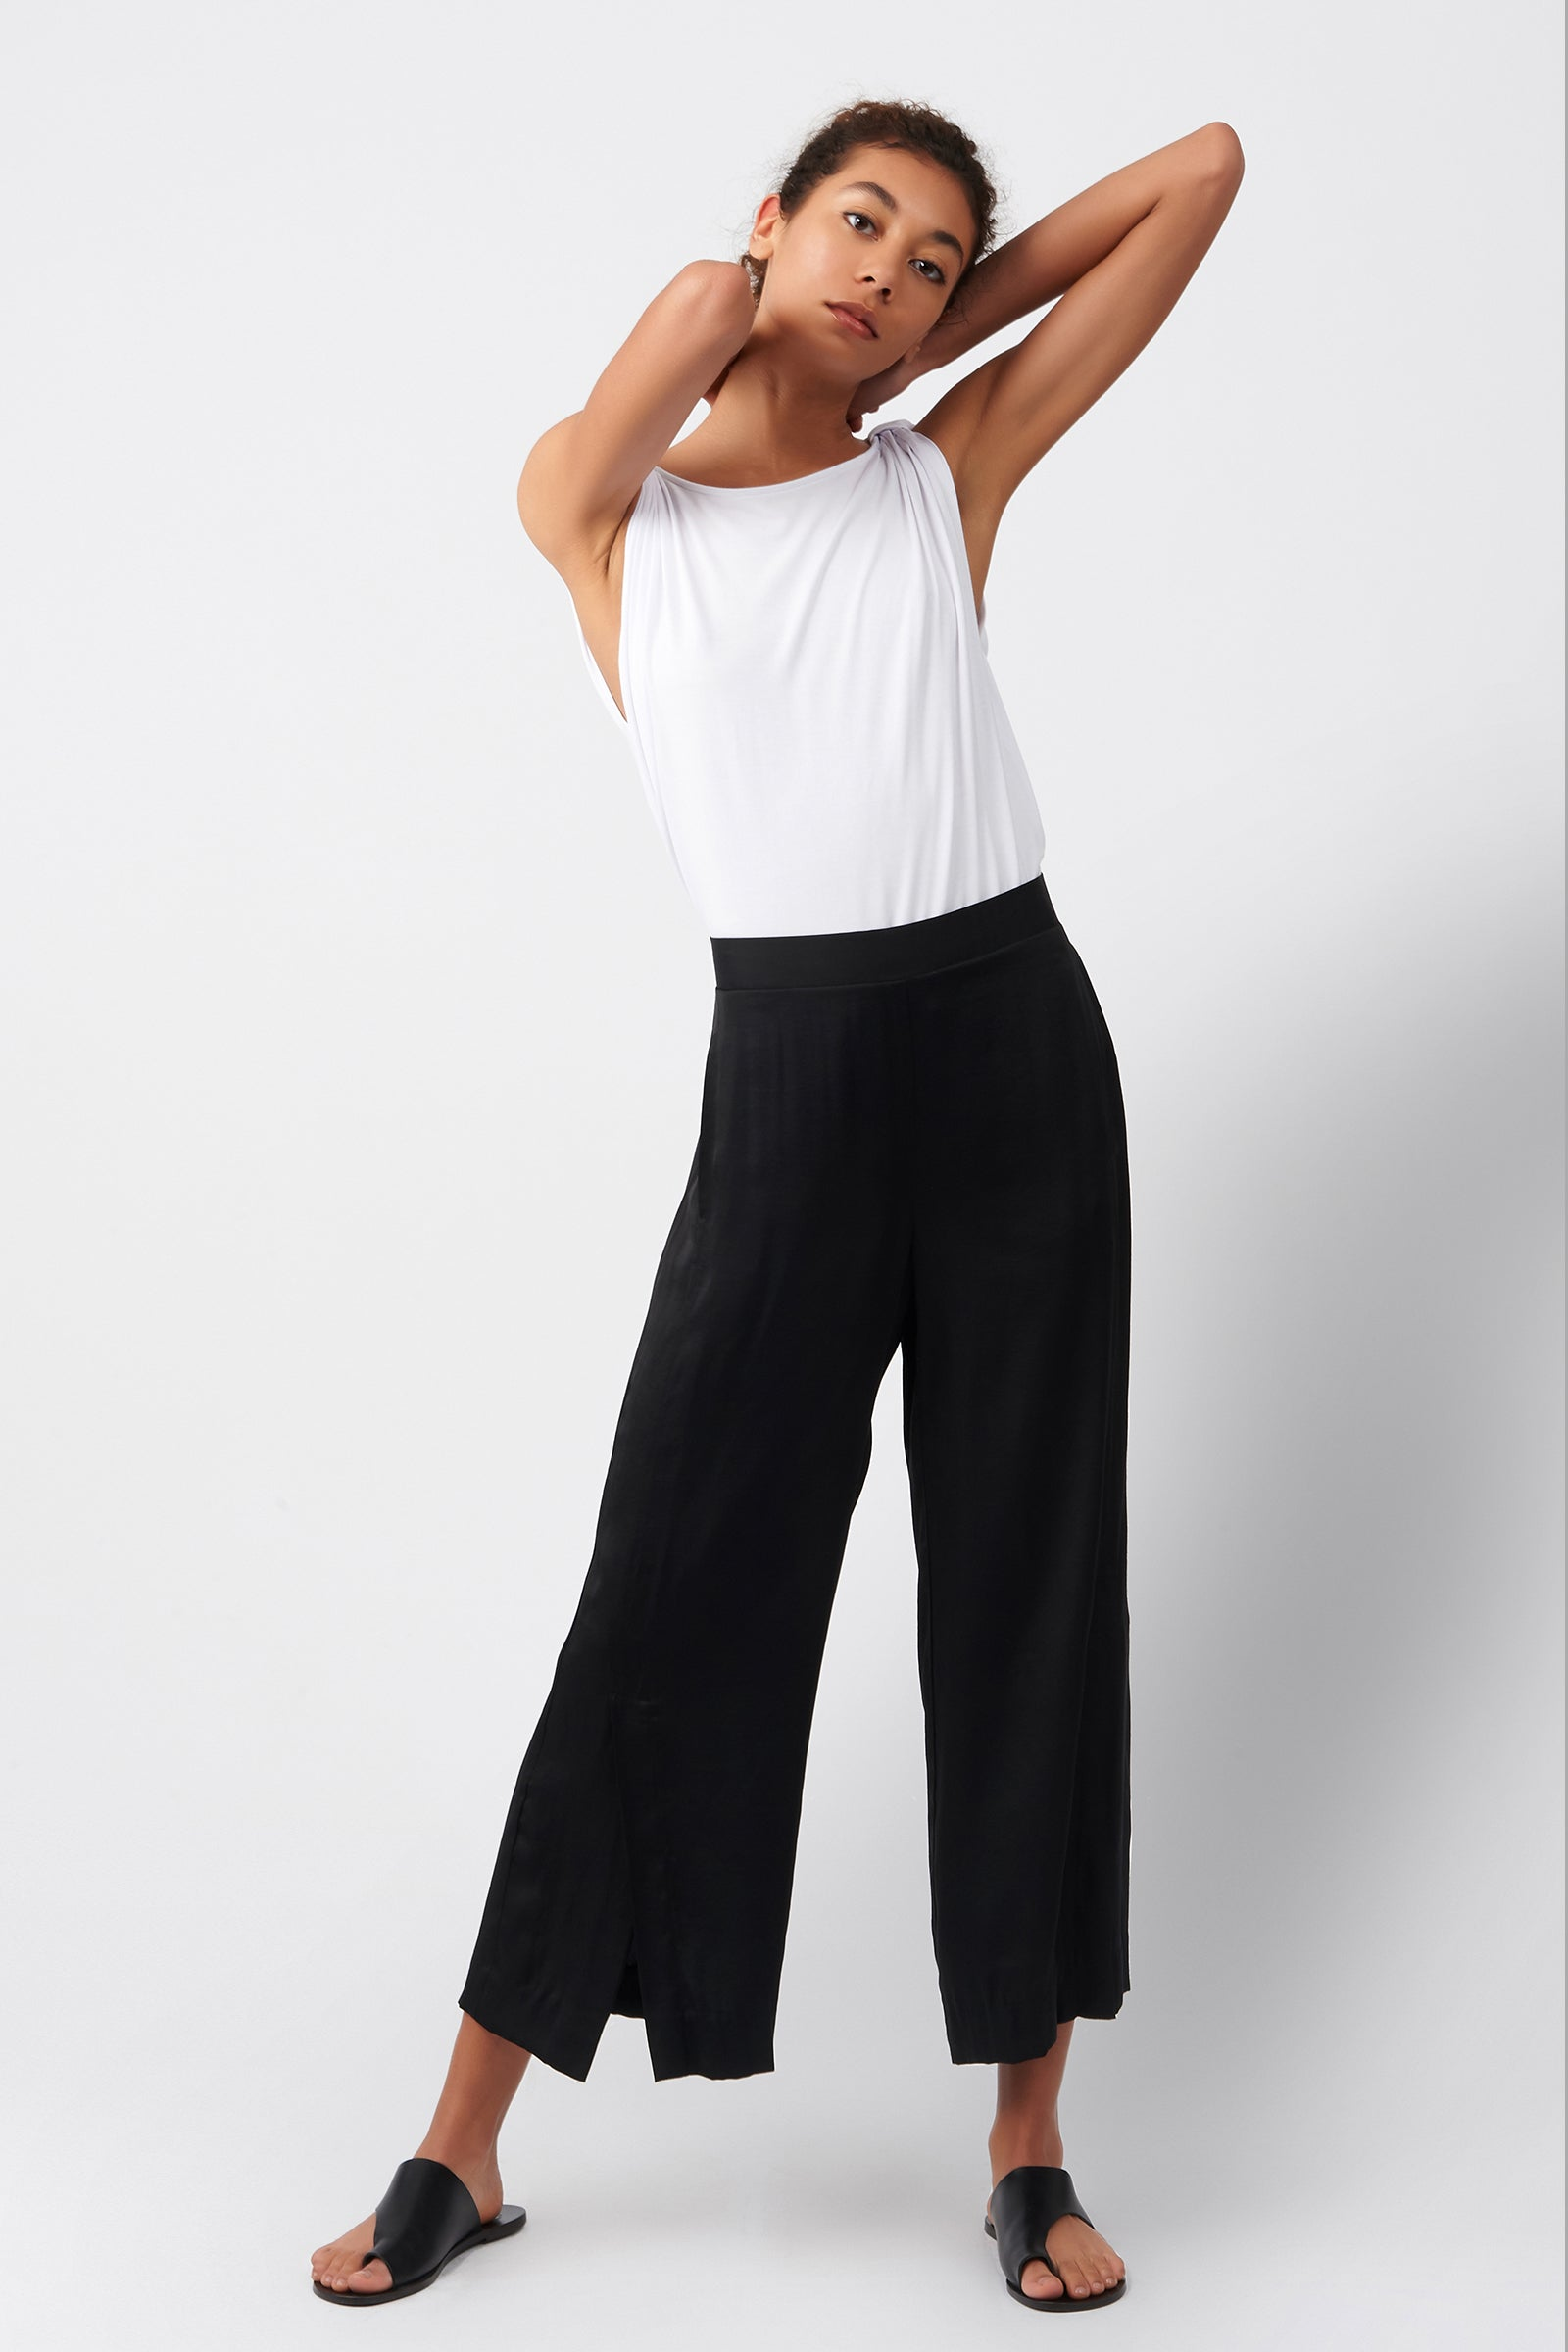 Kal Rieman Satin Side Kick Pant in Black on Model Full Front View